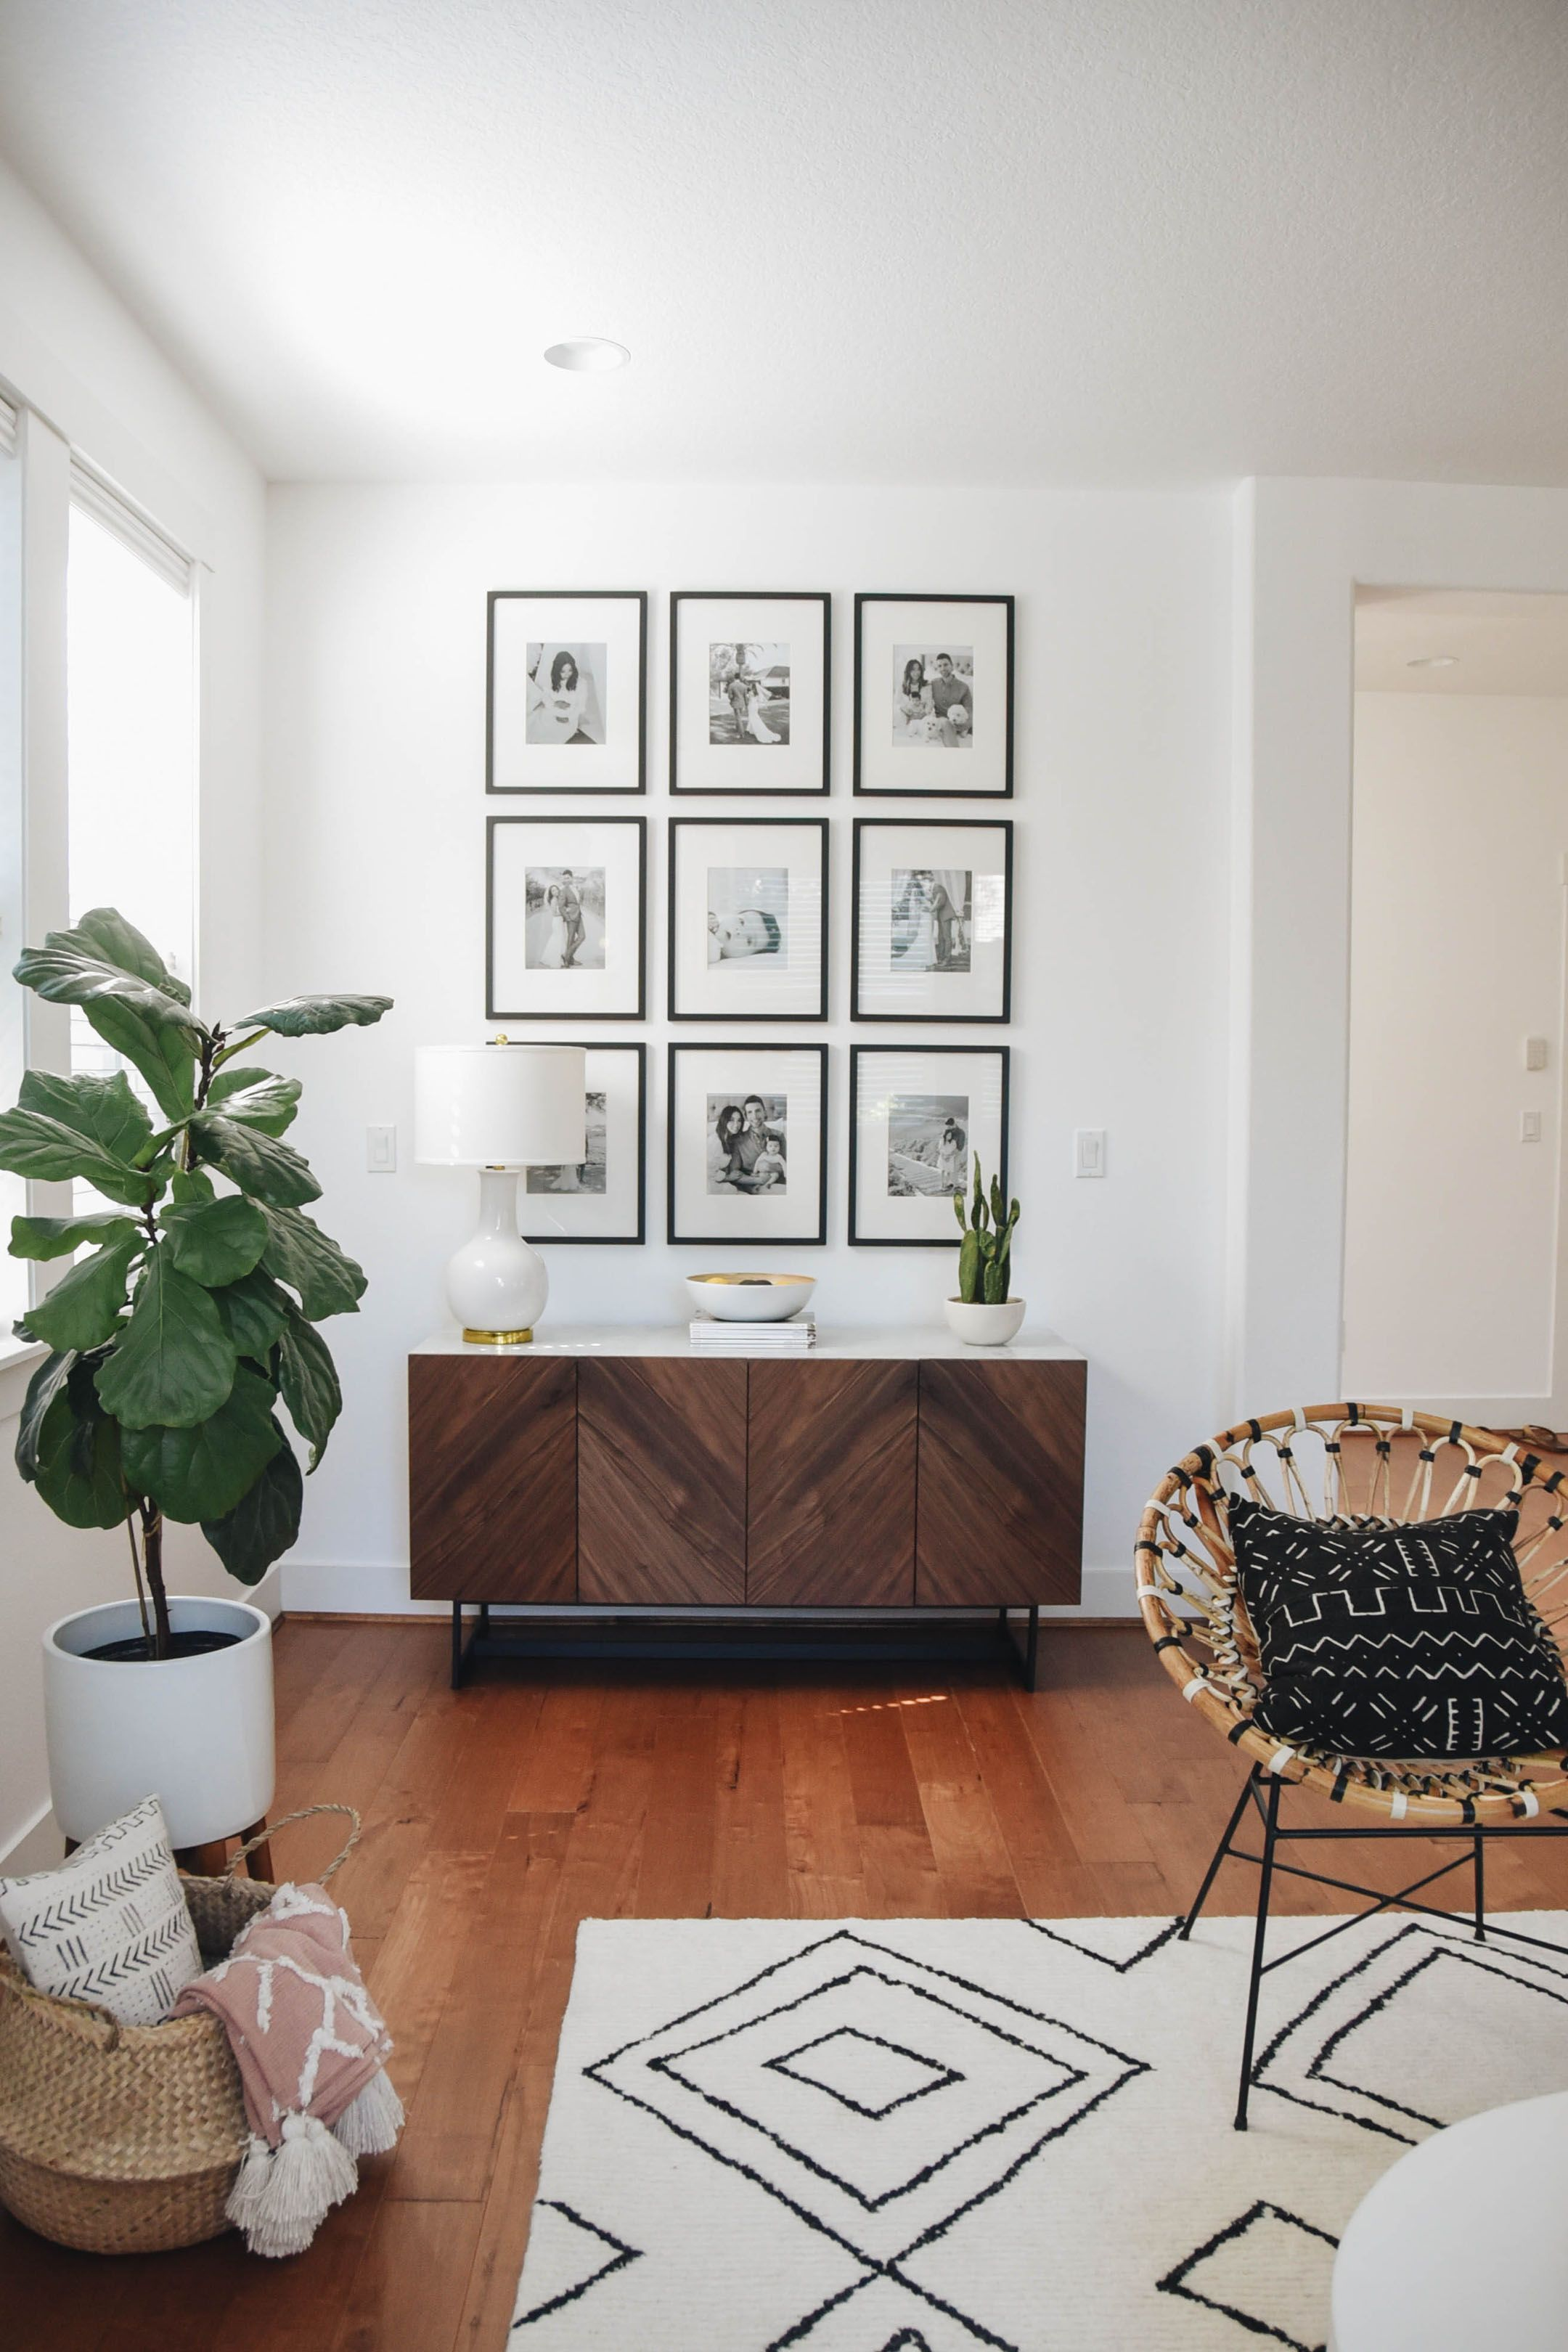 Living Room Reveal with Article | Arredamento, Idee ...